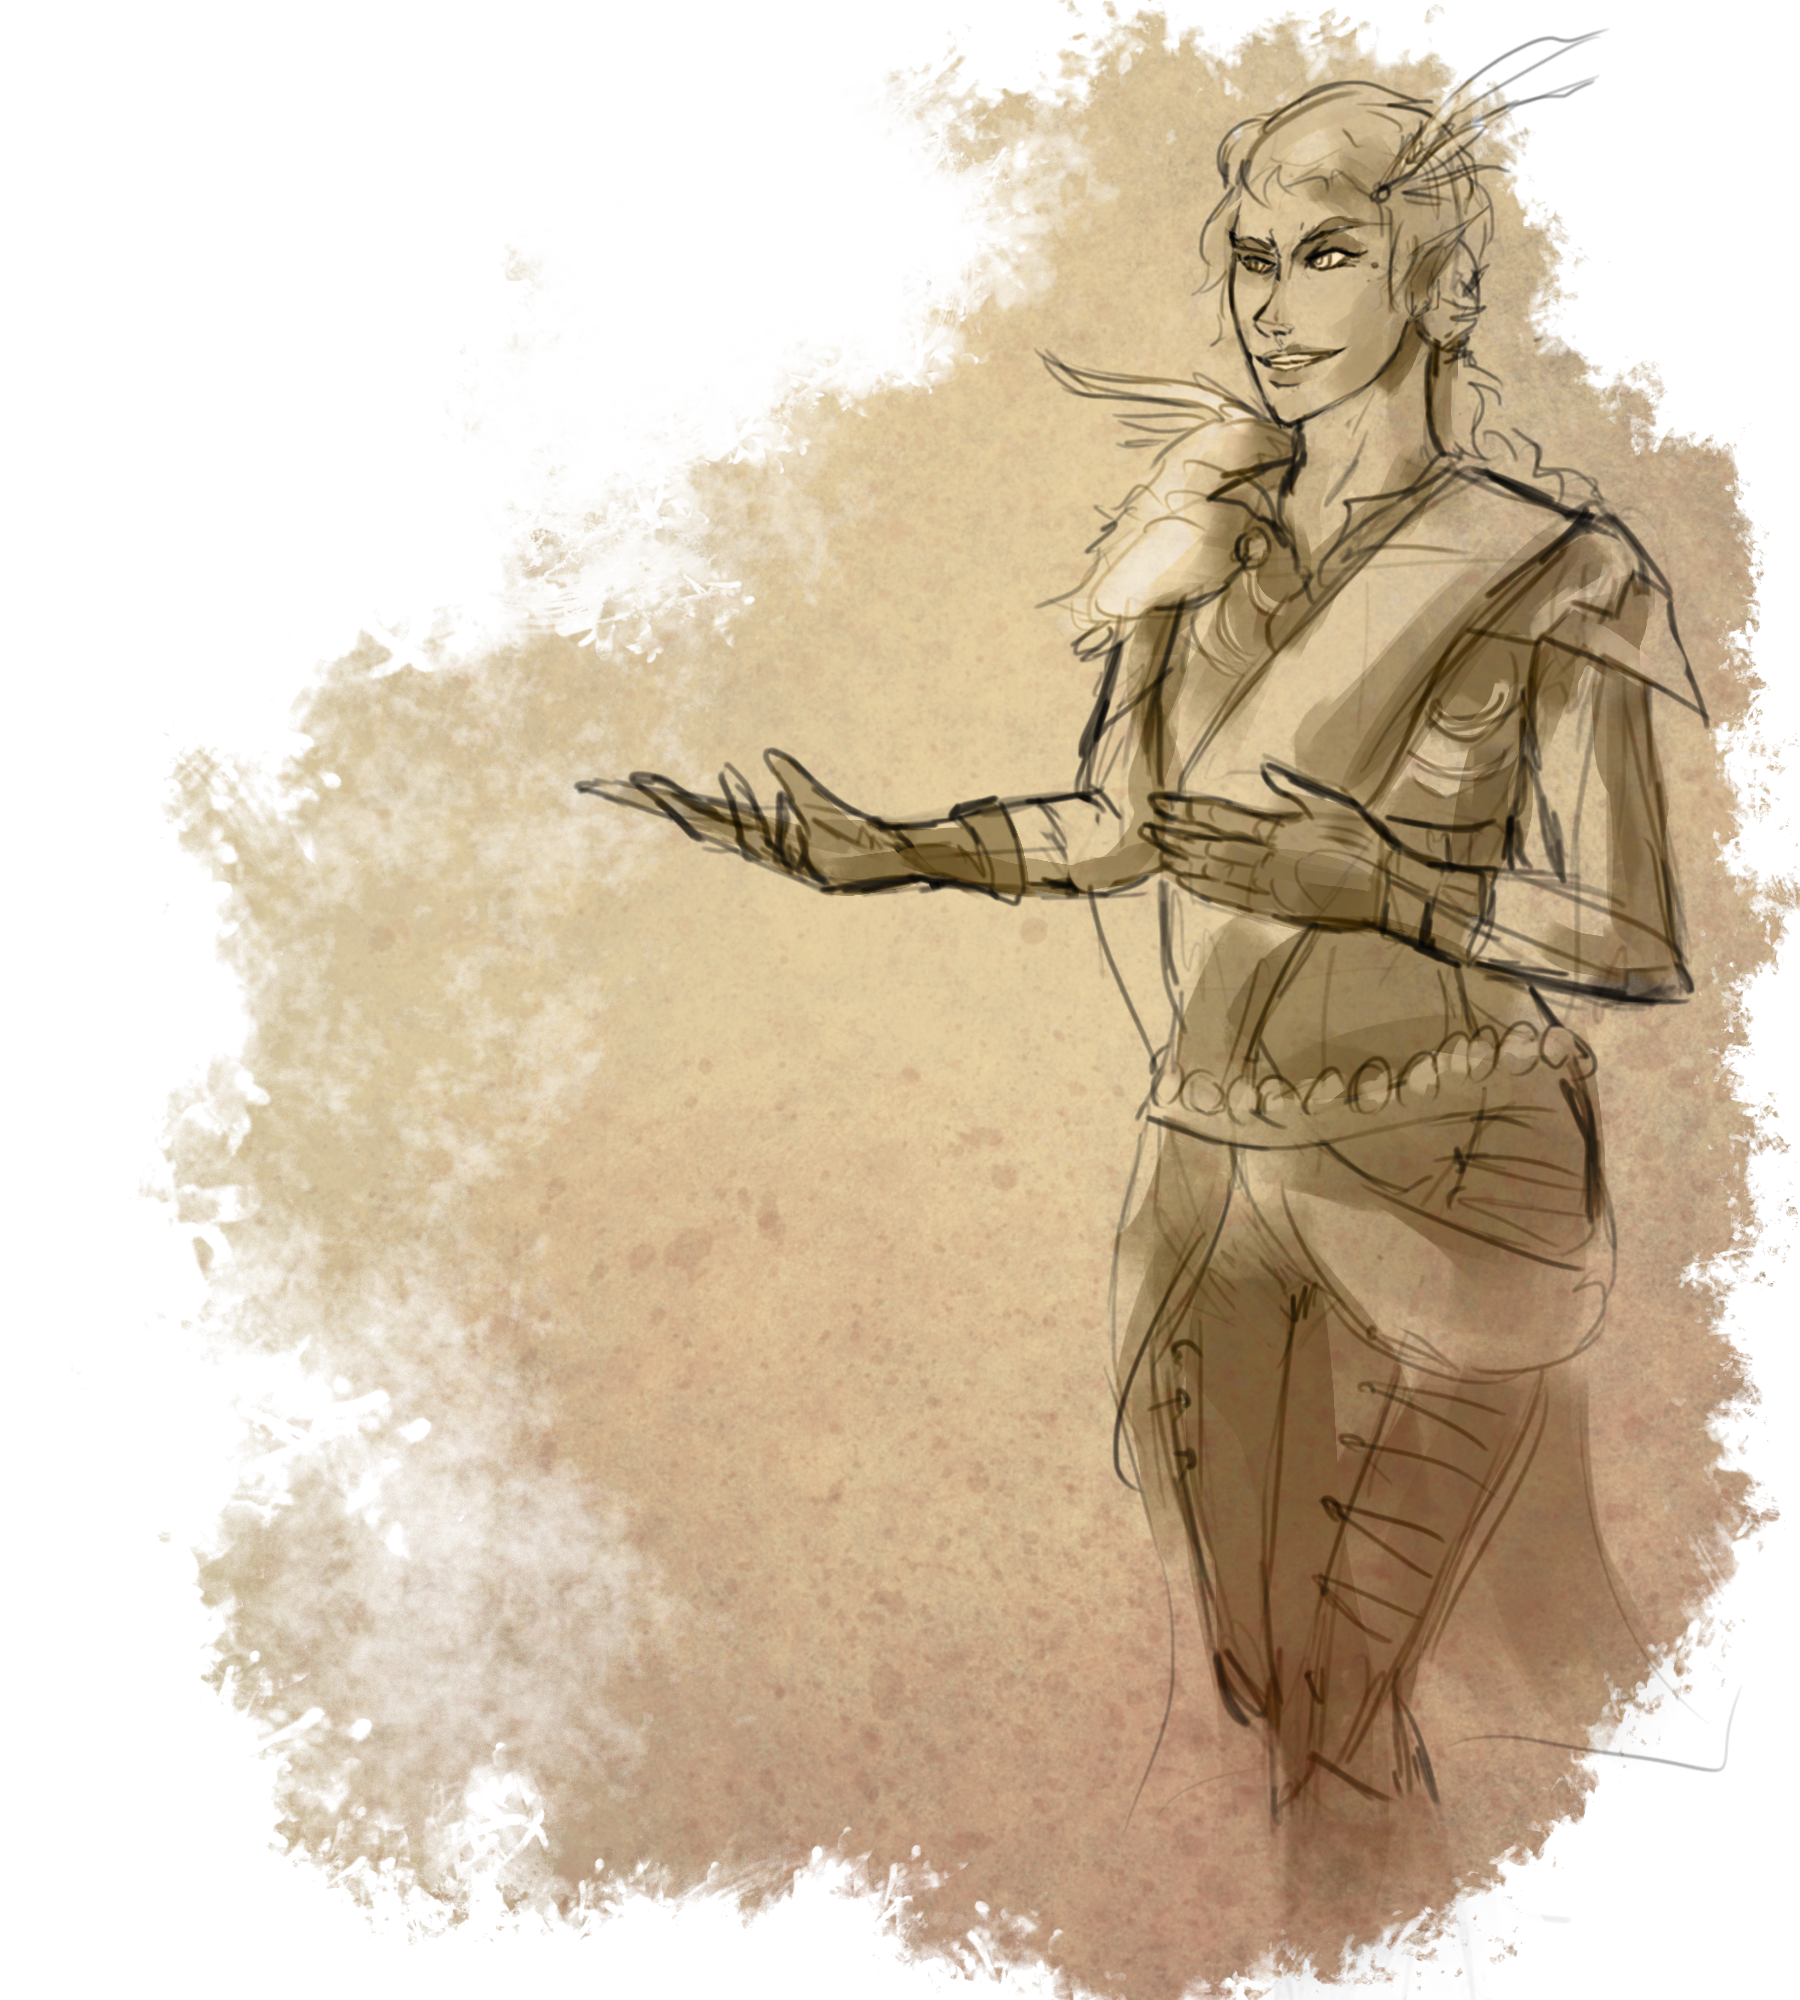 Act drawing woman. Eberron ch political theatre